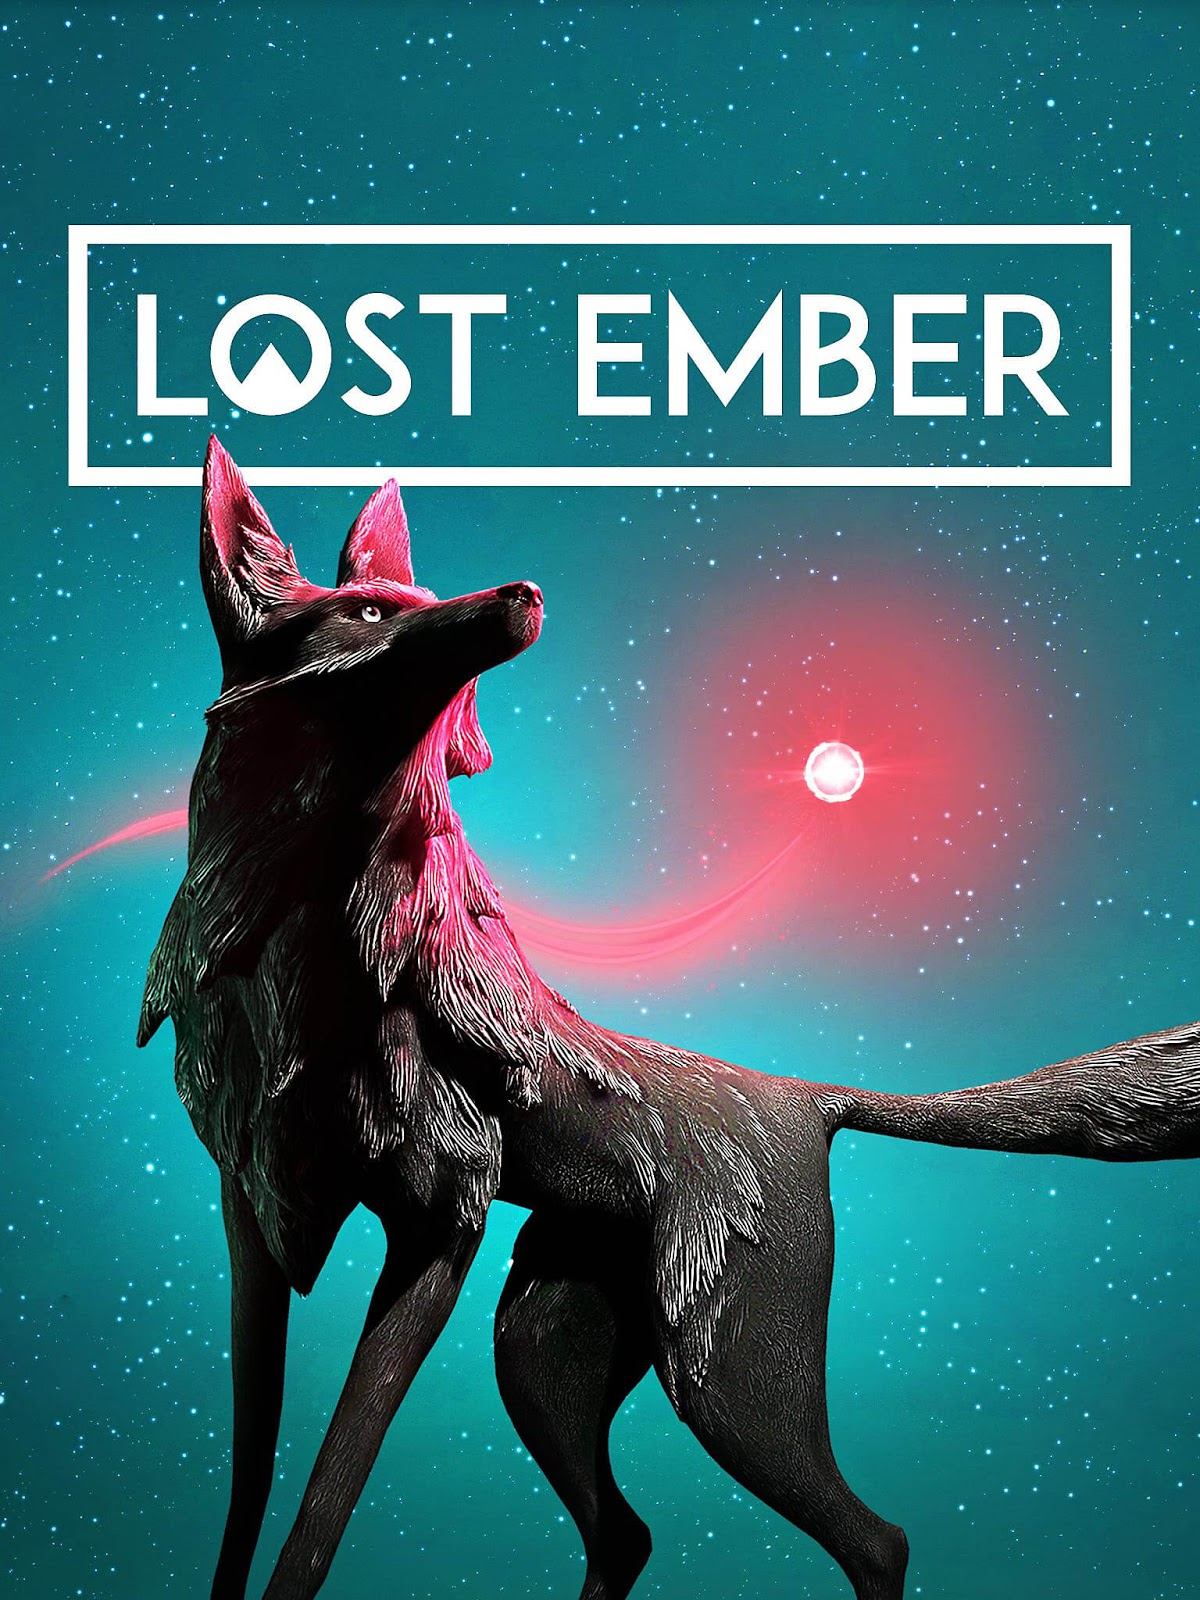 LOST EMBER game, download LOST EMBER game for pc, download LOST EMBER game, download LOST EMBER game for PC, download LOST EMBER game fitgirl, download healthy LOST EMBER game crack, download low volume LOST EMBER game, download compressed version of LOST EMBER game,  Watch the LOST EMBER game trailer